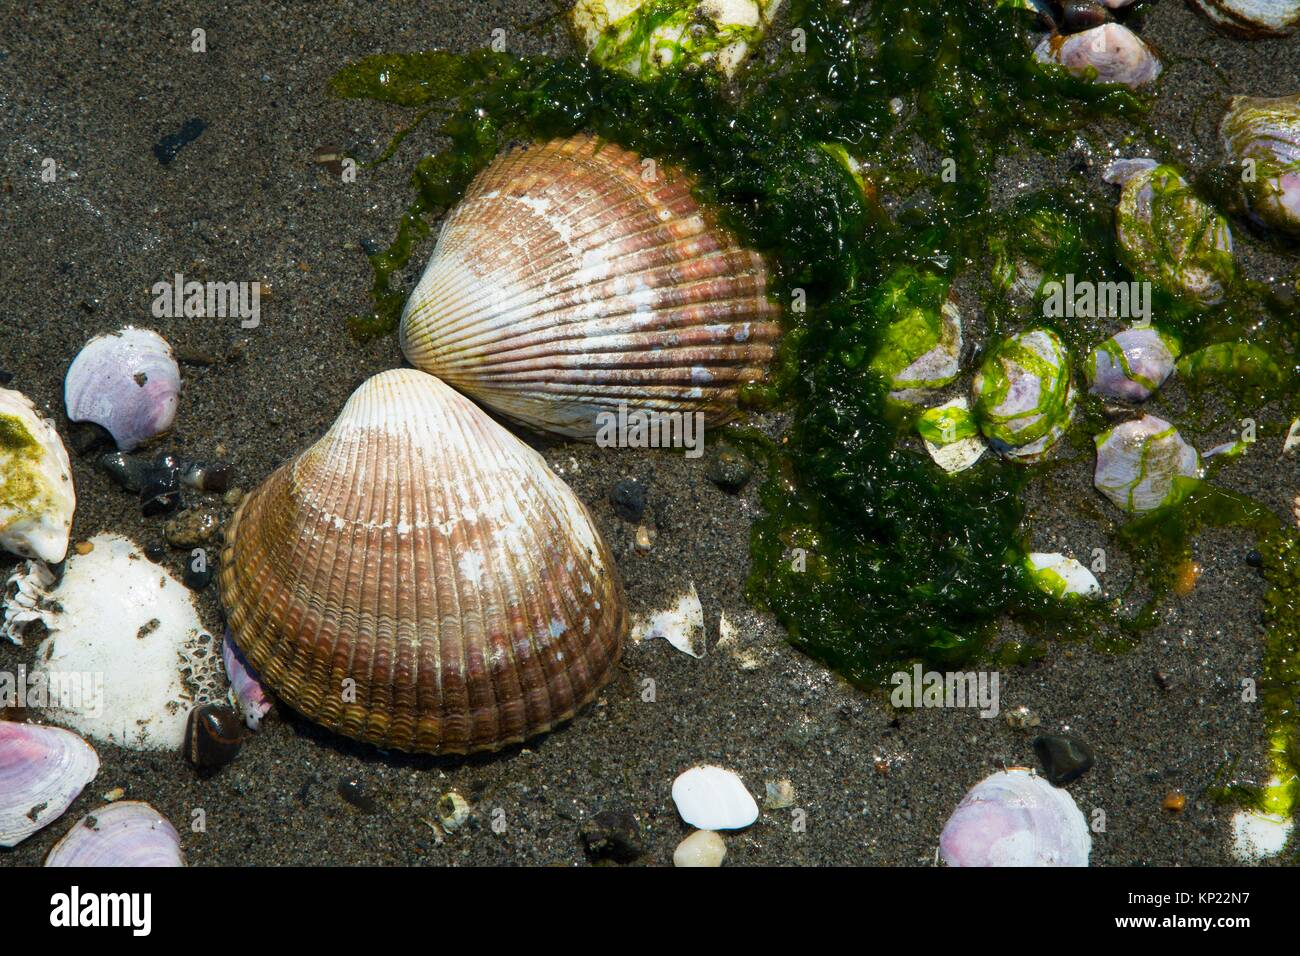 Clam shells, Foulweather Bluff Preserve, Washington. Stock Photo